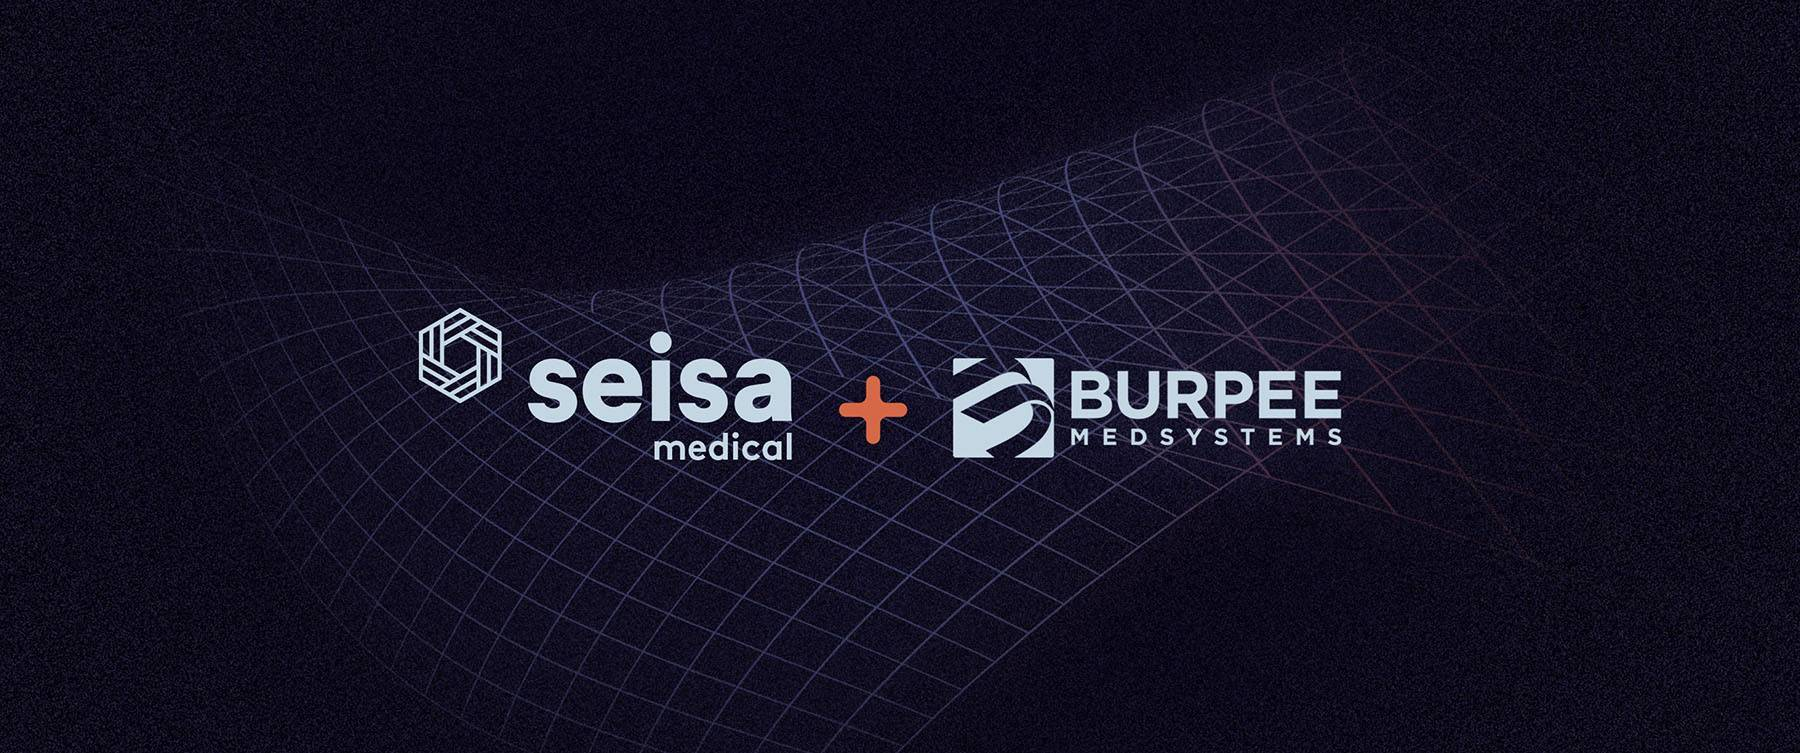 Seisa Medical Announces Acquisition of Burpee MedSystems